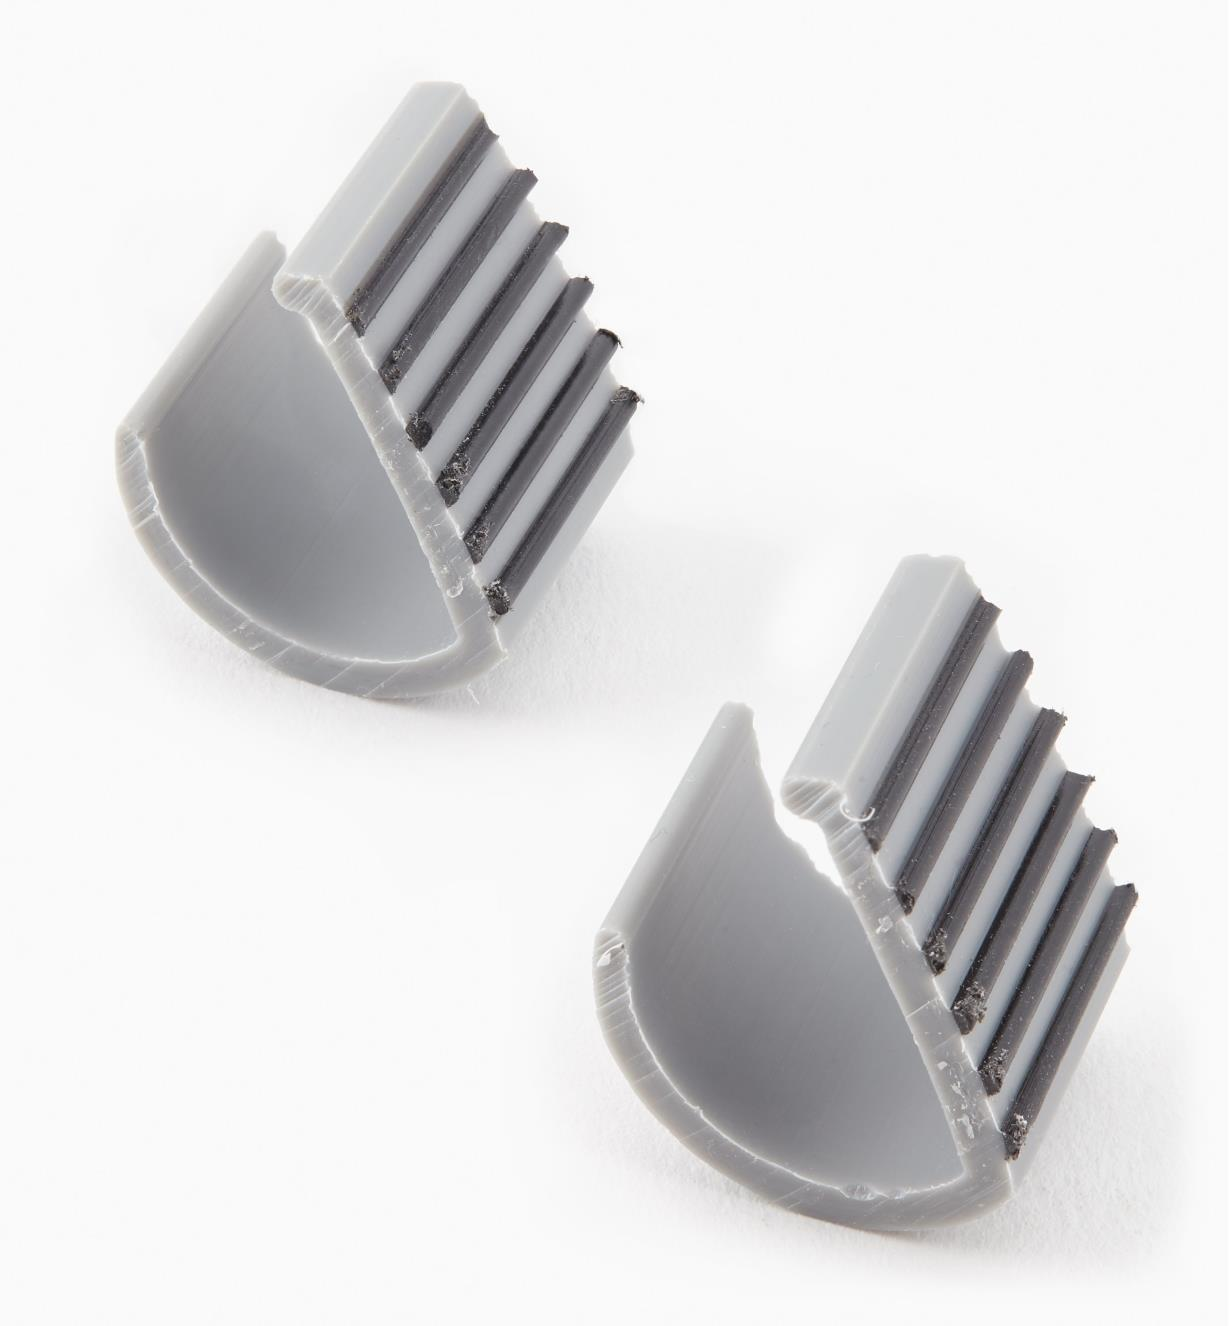 05G0406 - Muzzles for Bench Pups, pair